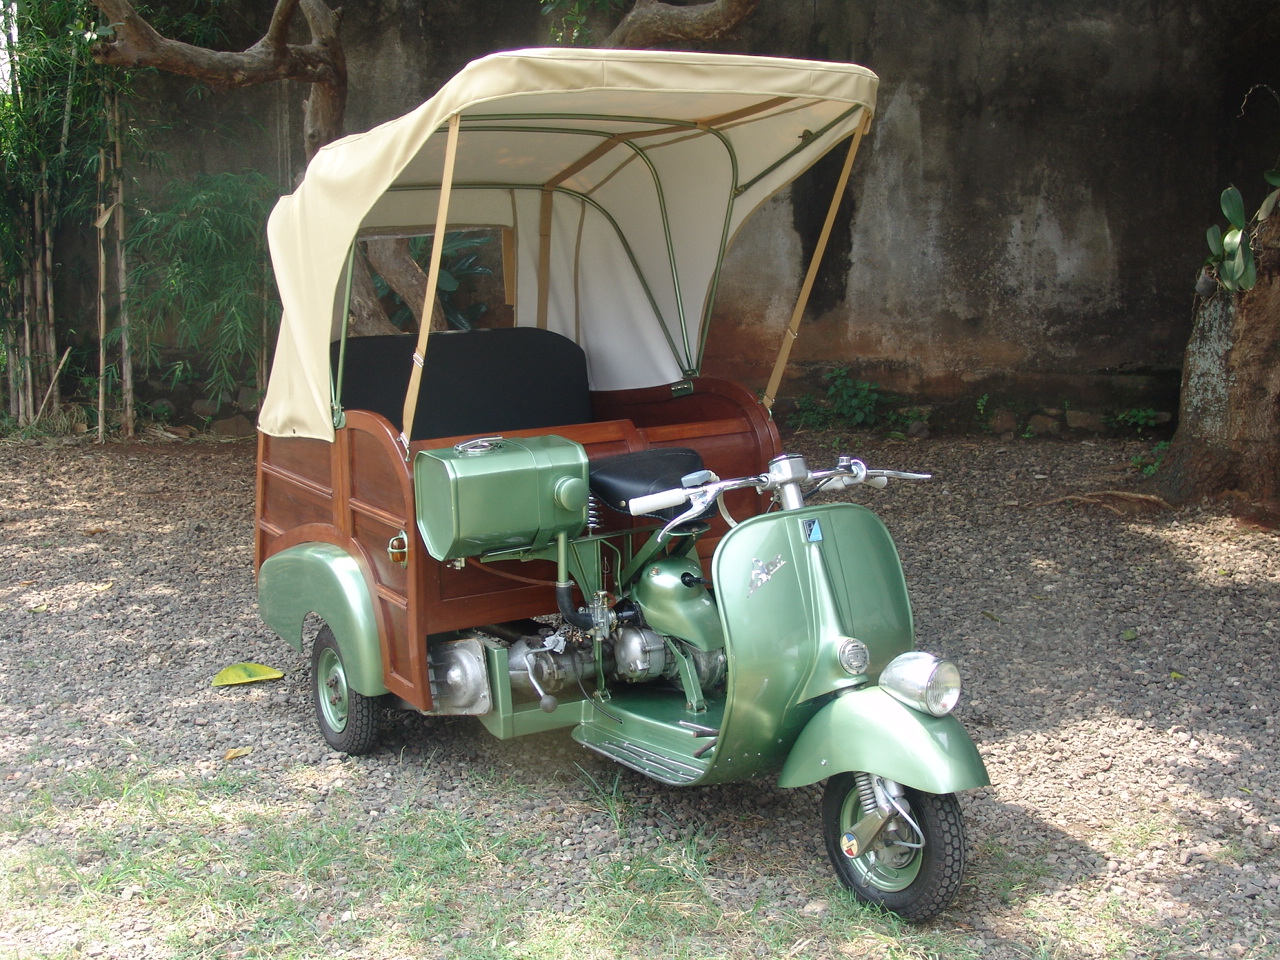 ape-calessino-green-scooter99-91